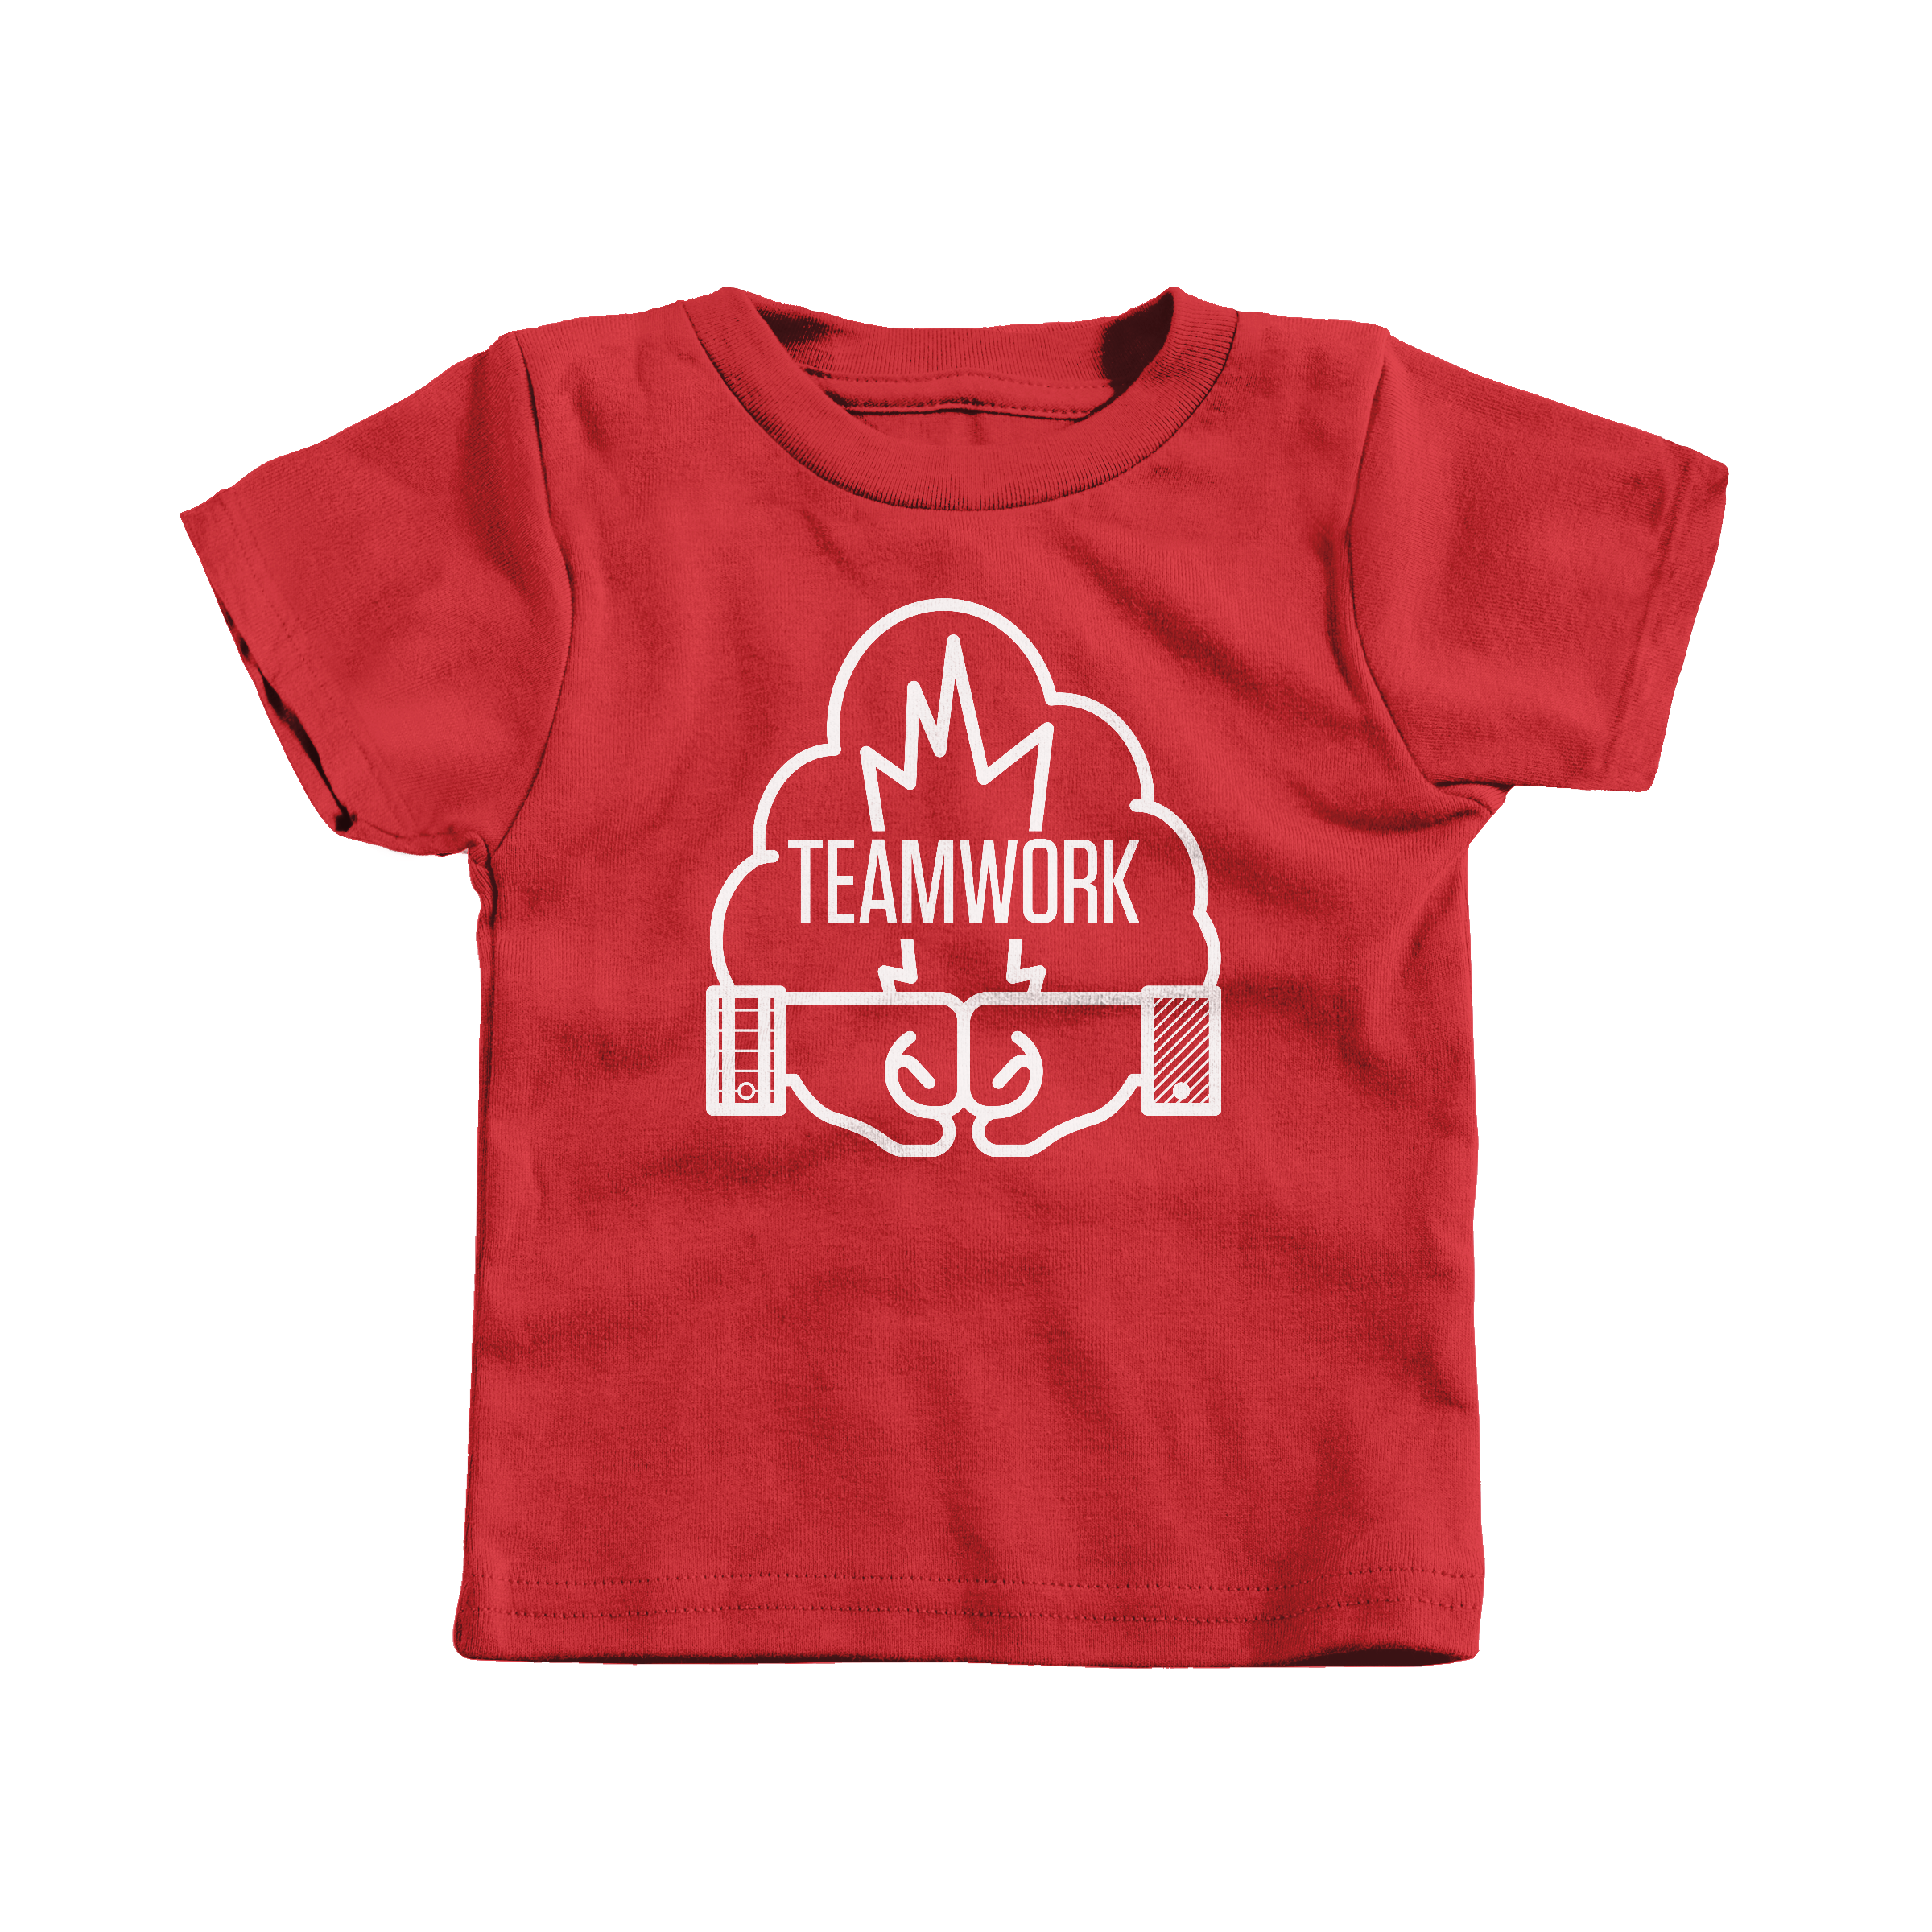 TEAMWORK Red (T-Shirt)